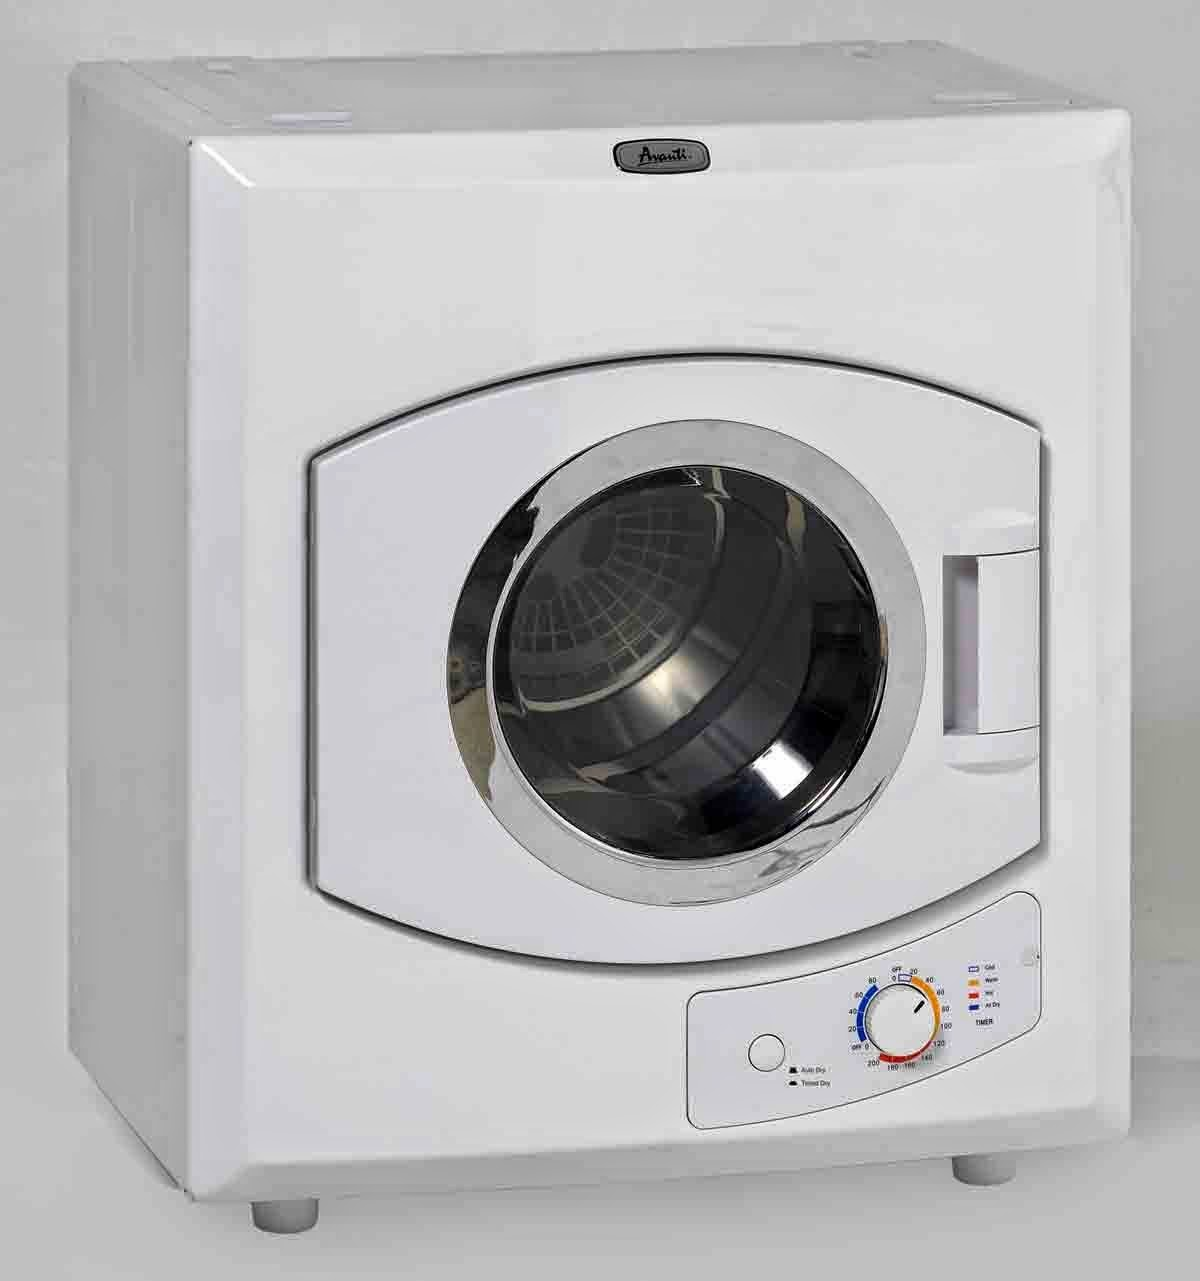 stackable washer and dryer: apartment size washer and dryer stackable